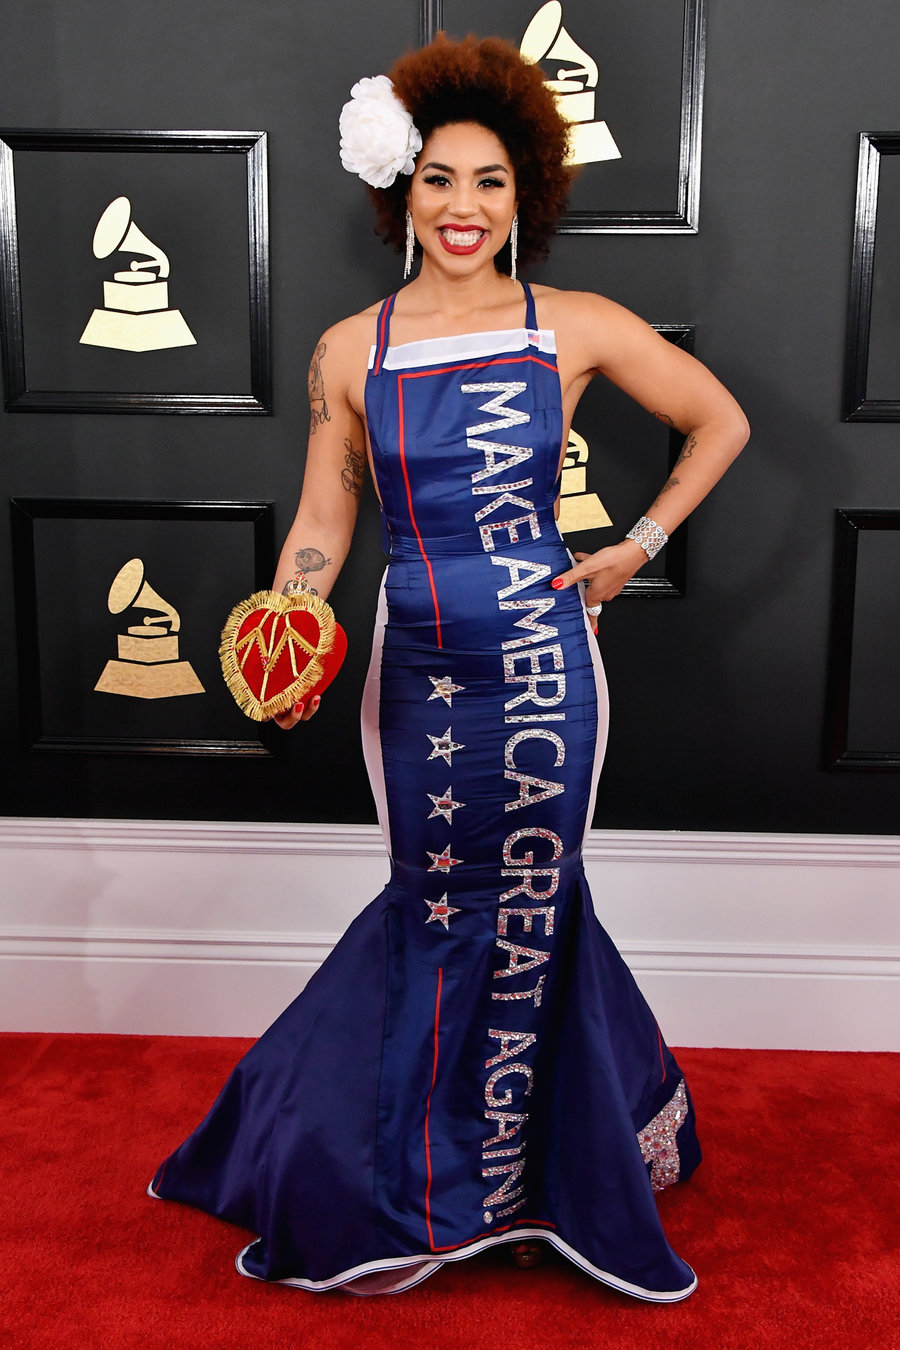 joy-villa-grammys-red-carpet-2017-billboard-1240.jpg